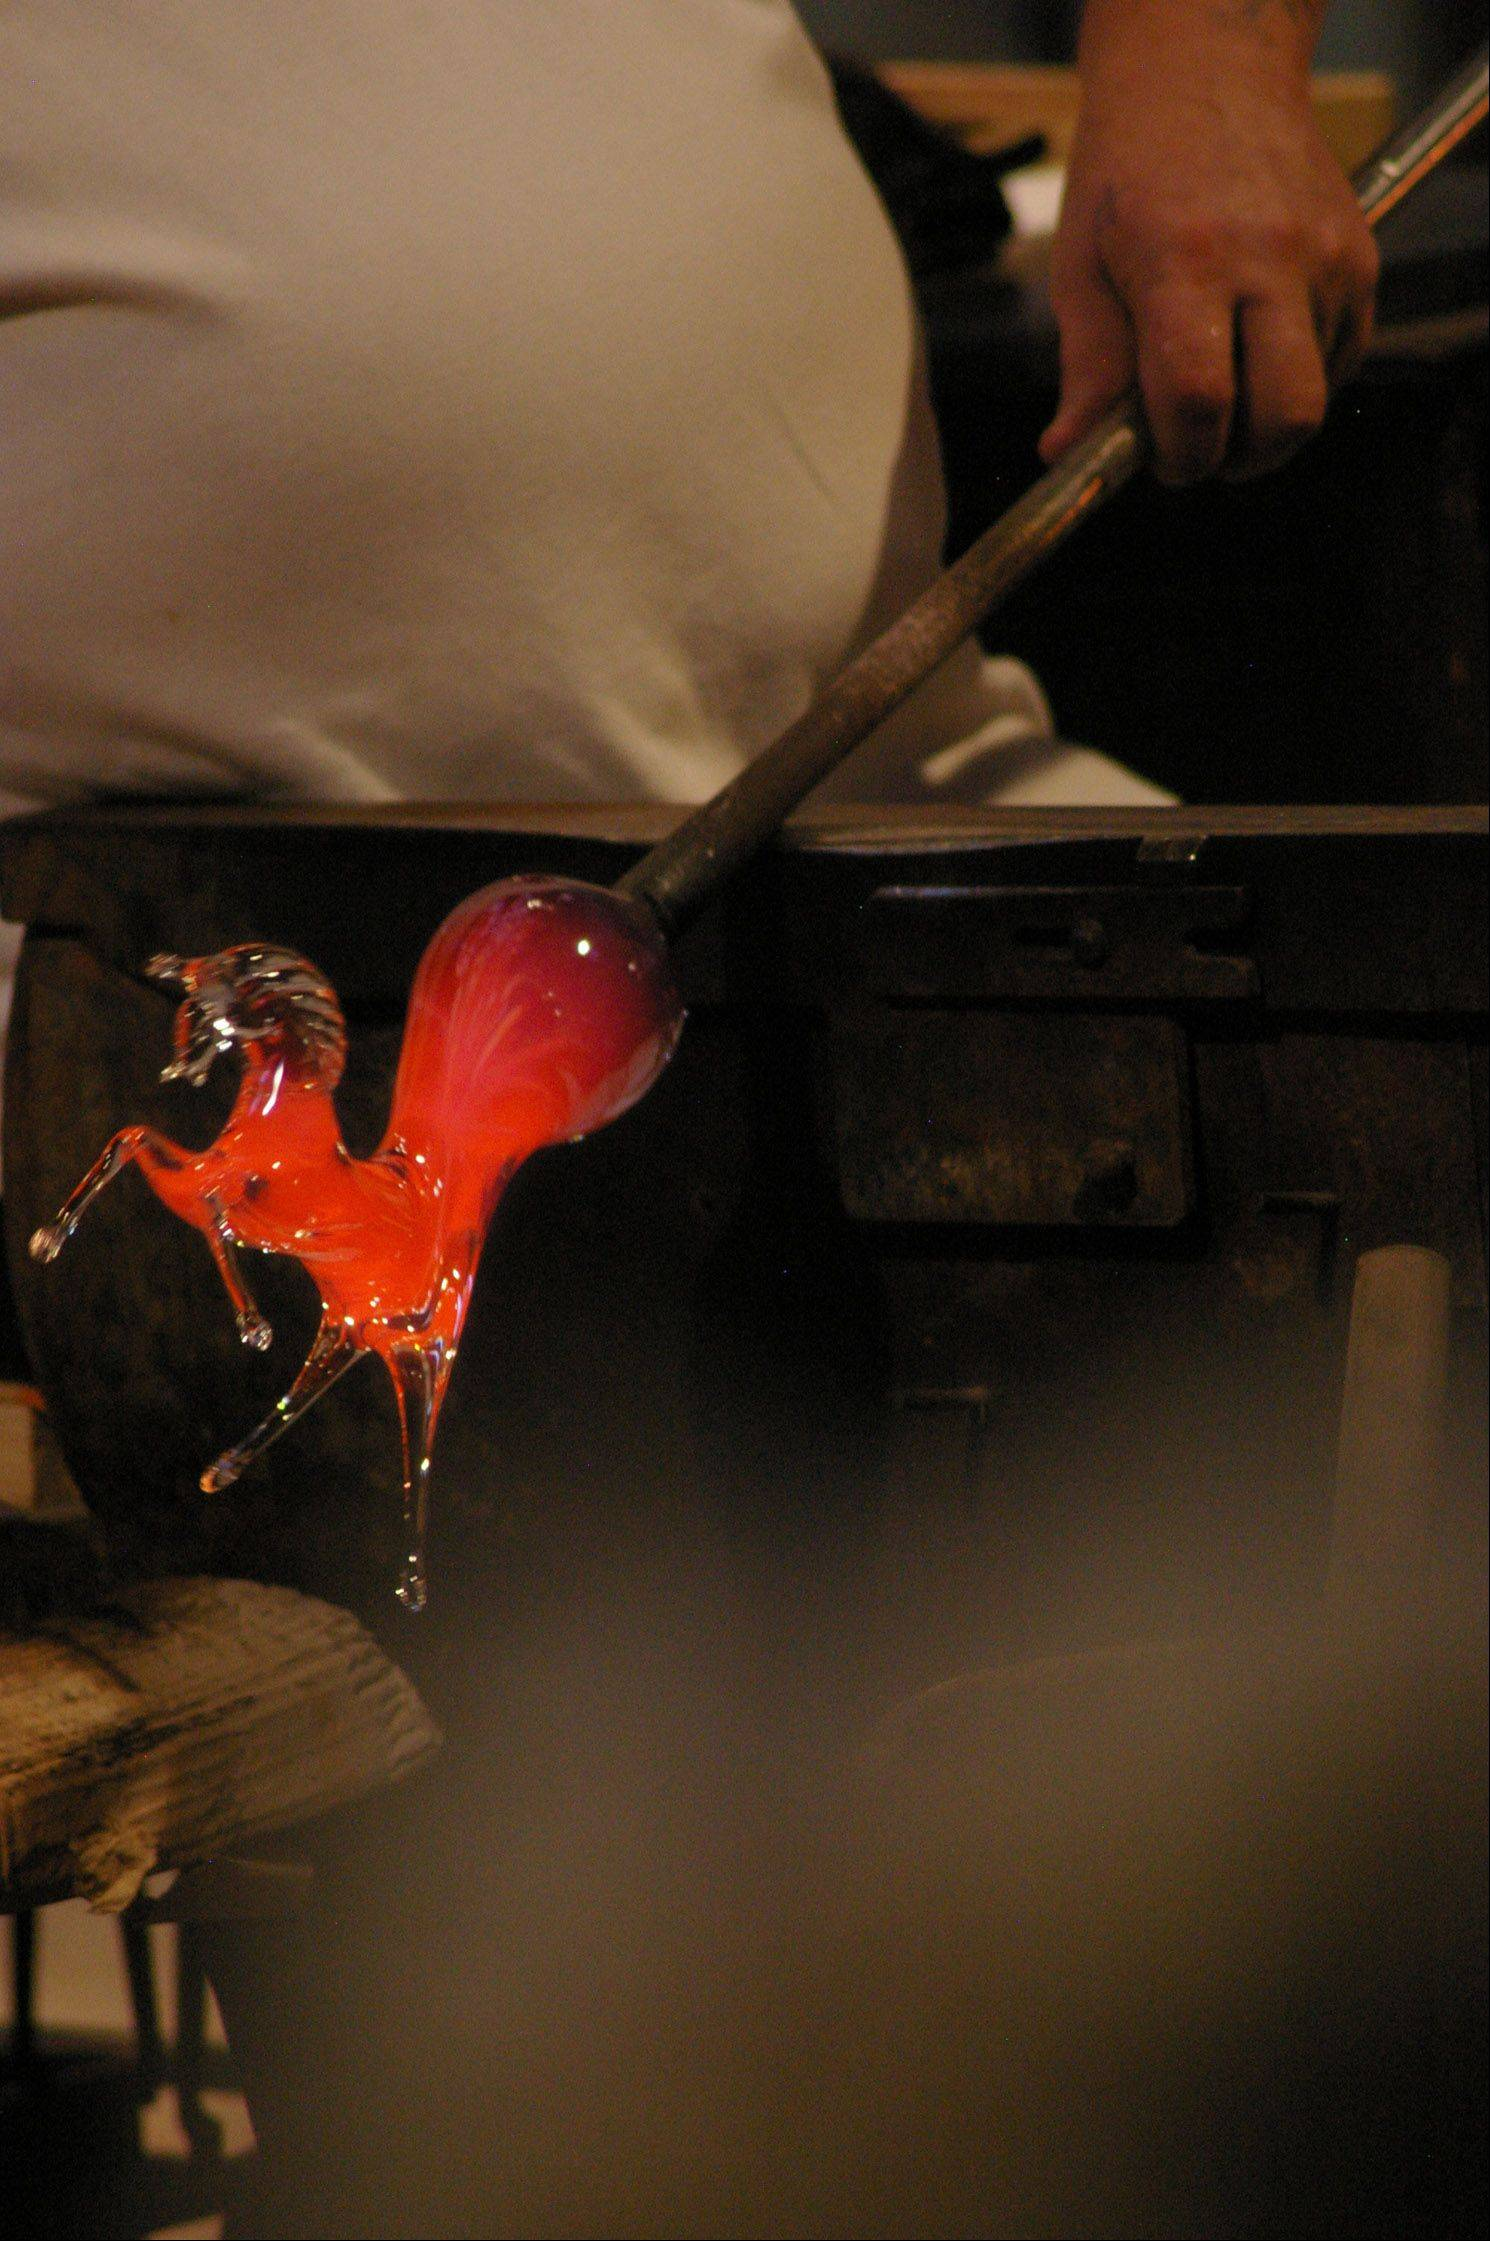 A Murano glassblower created this horse in less than five minutes during a factory demonstration on October 11th in Venice, Italy.